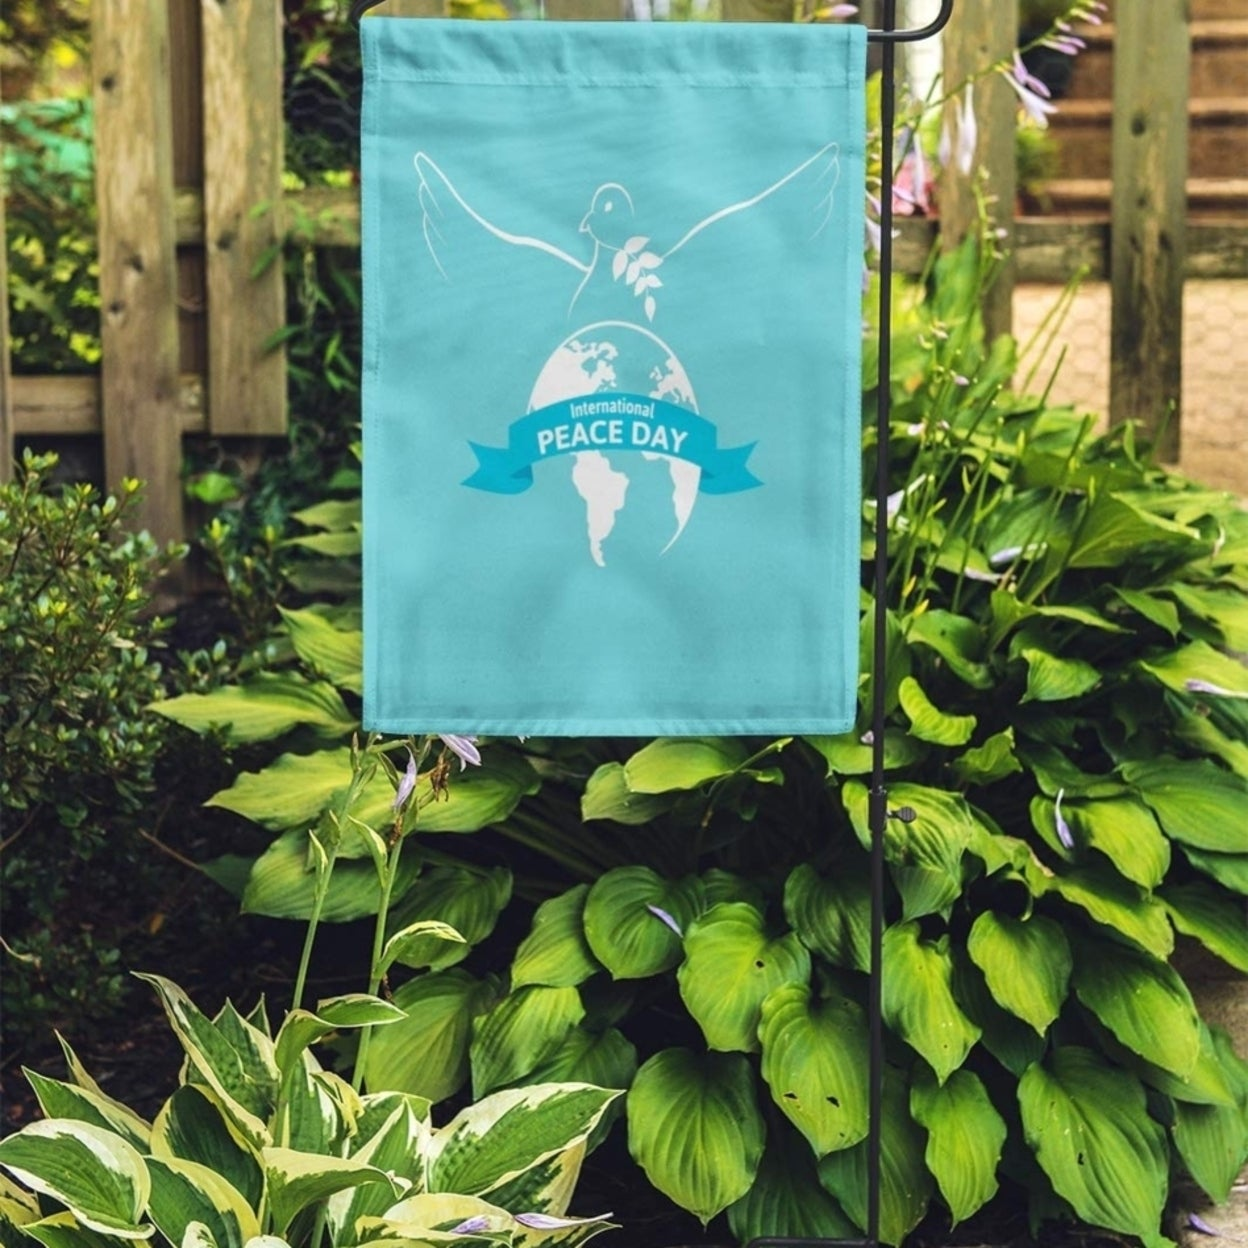 Blue World International Peace Day Dove Bird Celebration Earth Faith Garden Flag Decorative Flag House Banner 12x18 Inch N A On Sale Overstock 31402484